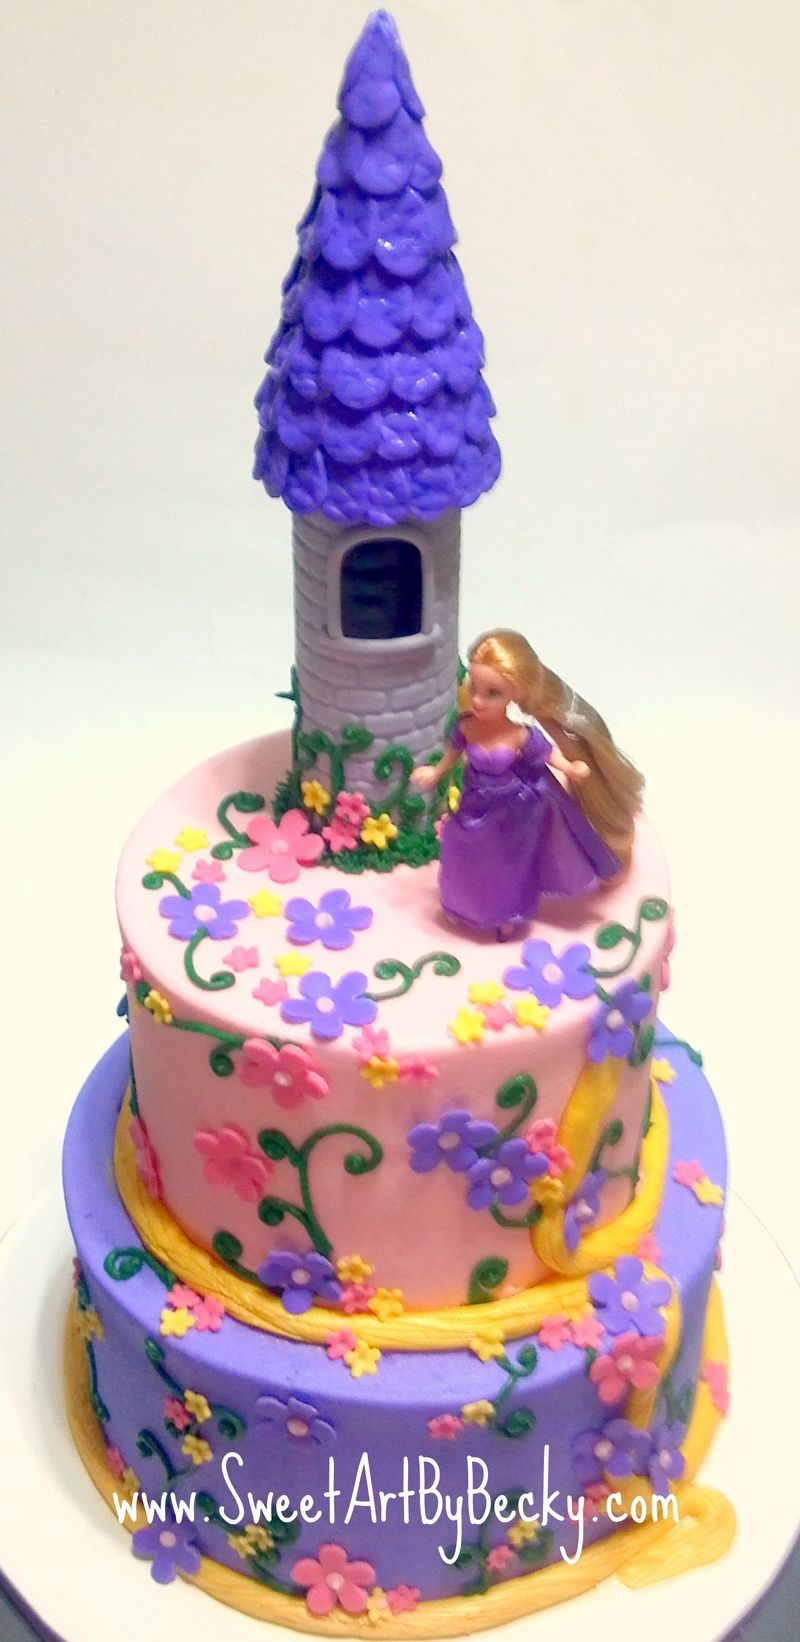 Tangled Birthday Cakes Cleveland Dayton Wedding Birthday